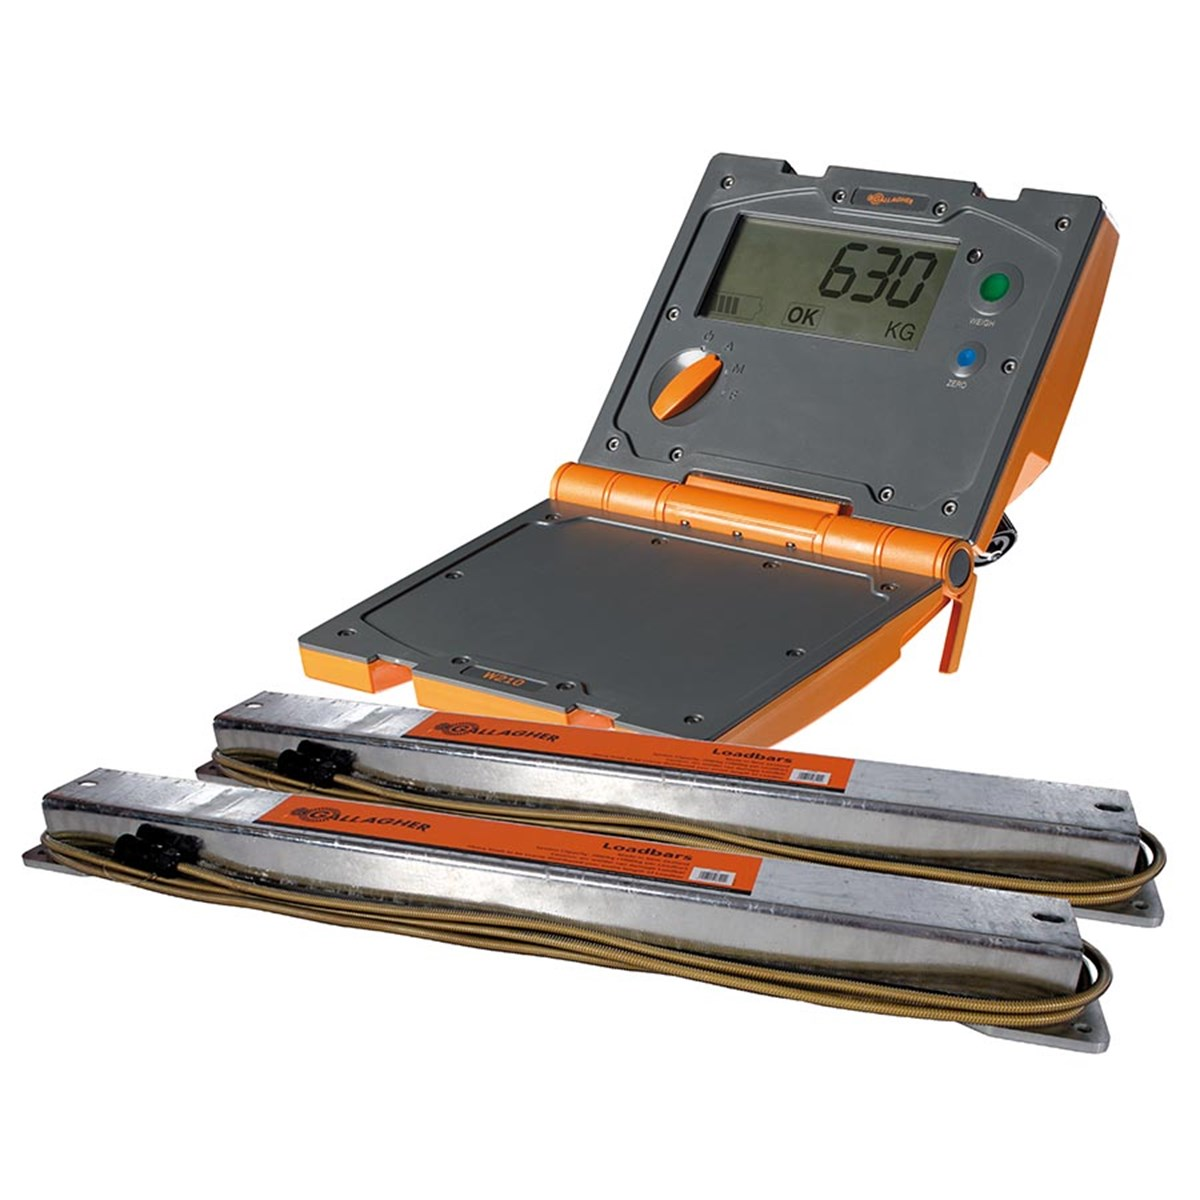 Aps quickweigh kit 1000/w210